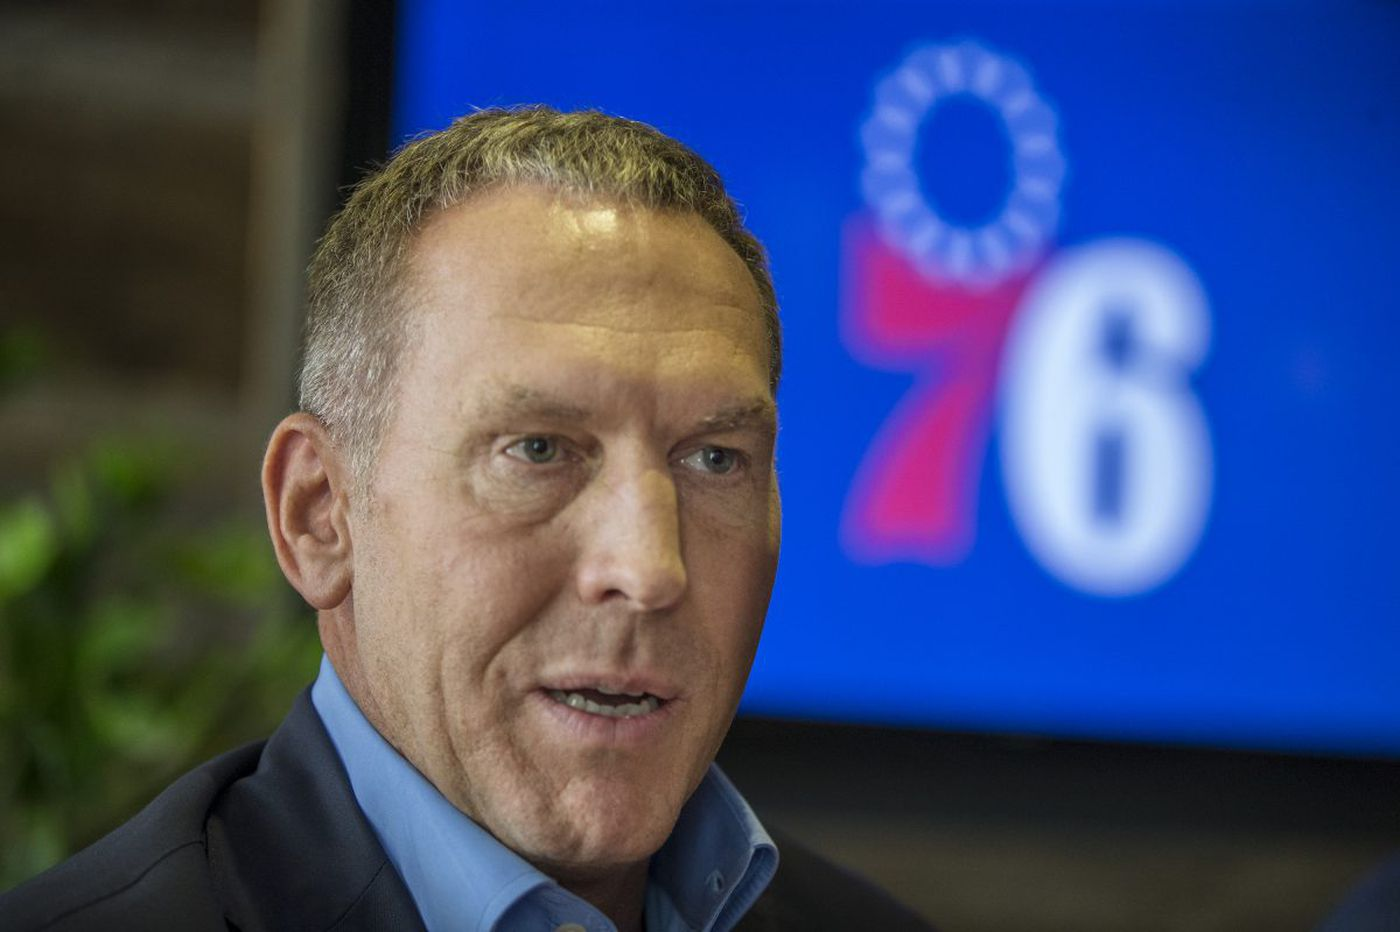 Sources: Sixers' investigation into Bryan Colangelo's Twitter allegations expected to be done within next few days